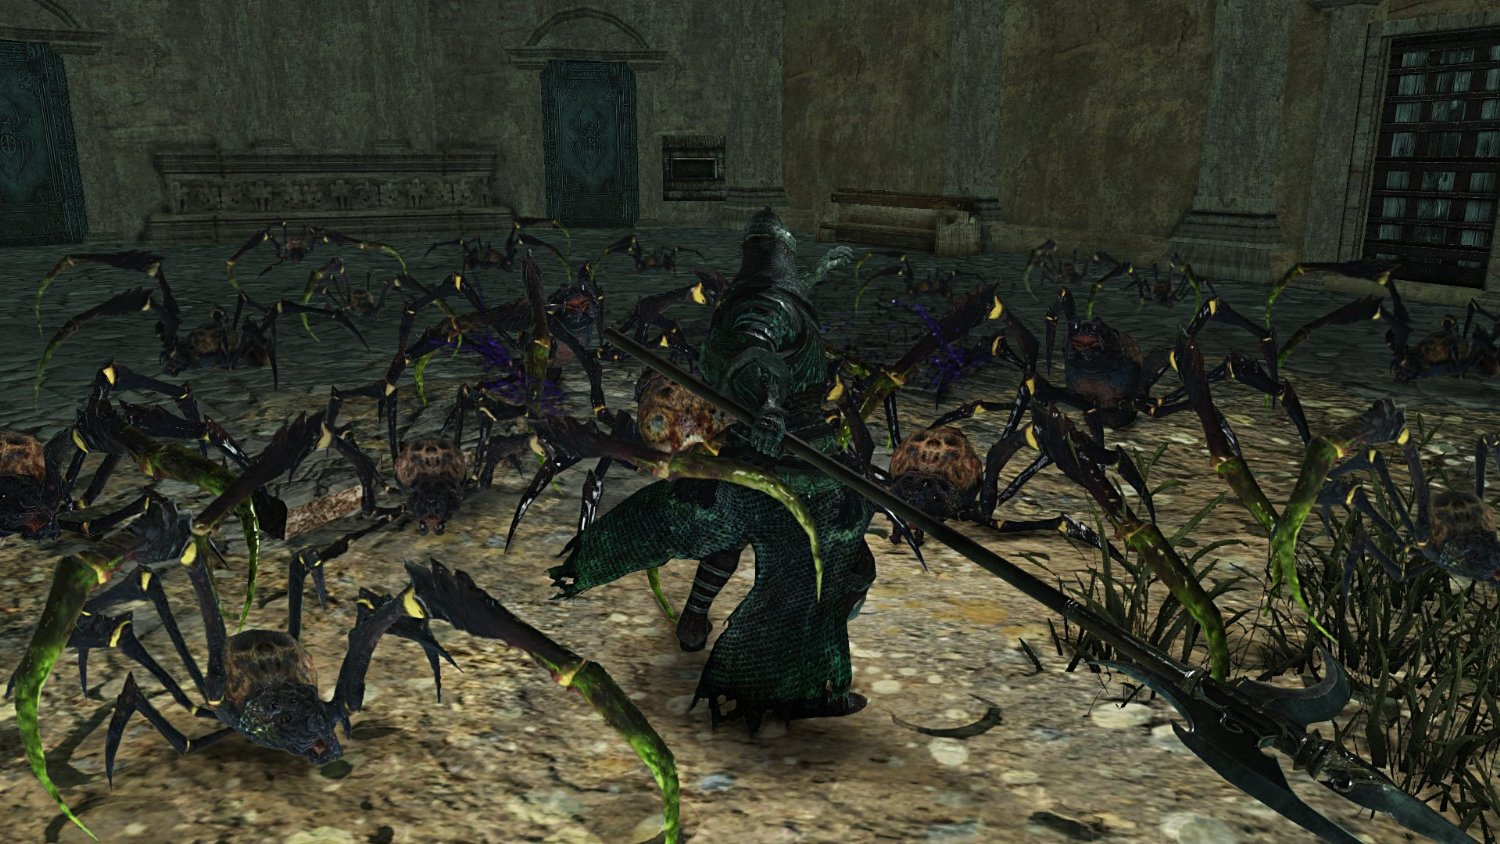 Dark Souls II: Scholar of the First Sin screenshot 2140